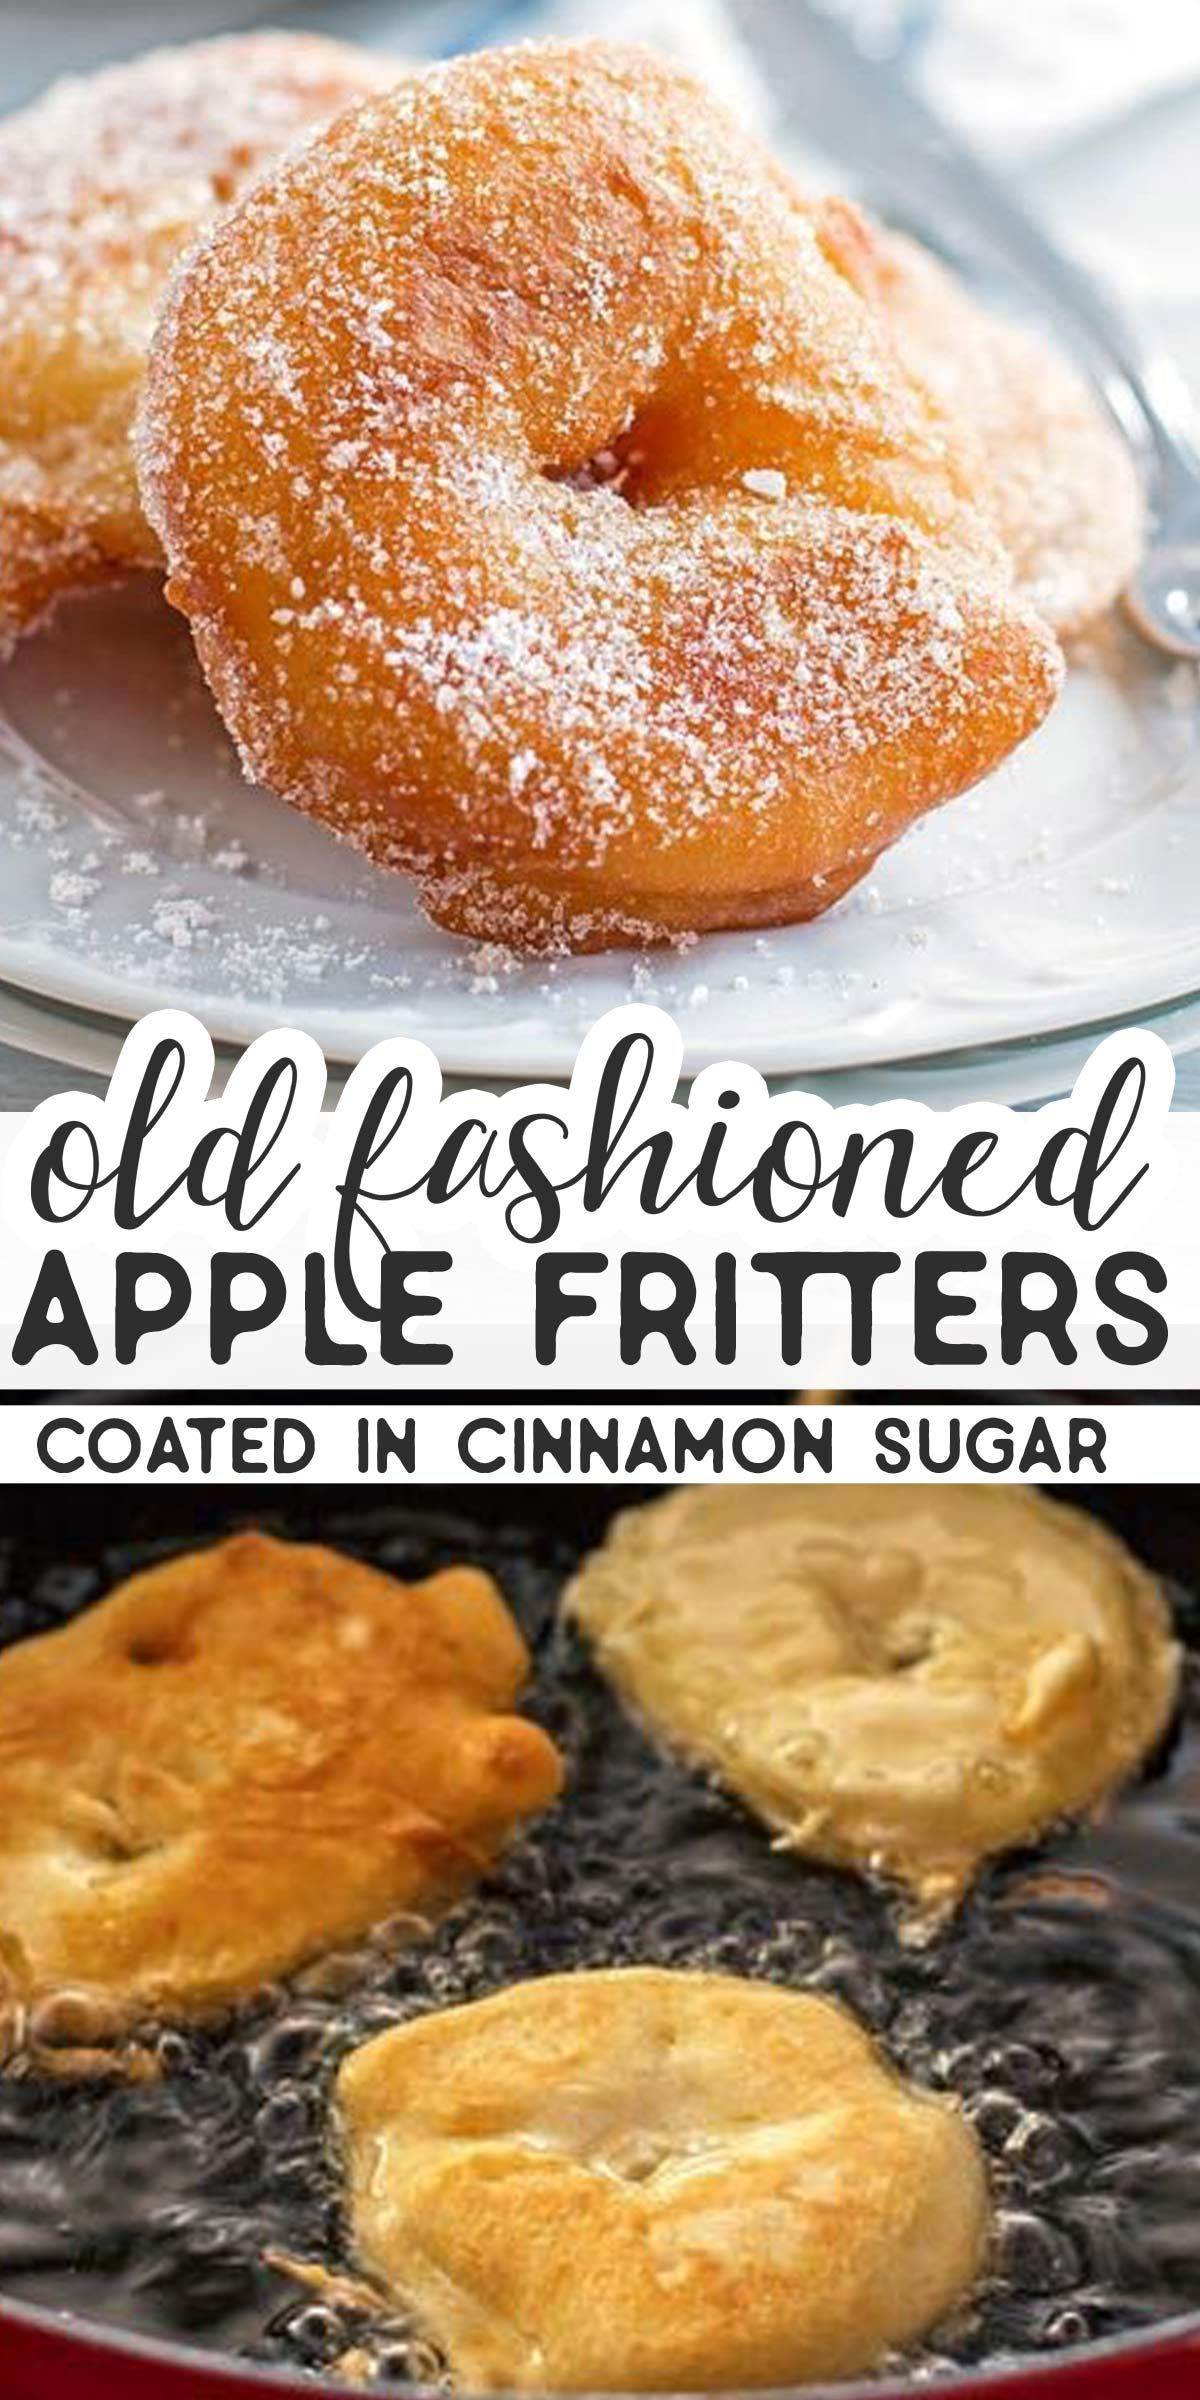 you looking for the BEST Old Fashioned Apple Fritter recipe? You should give this easy homemade version a try. The apple rings are fried and then dipped into cinnamon sugar – fall perfection! |Are you looking for the BEST Old Fashioned Apple Fritter recipe? You should give this easy homemade version a try. The apple...